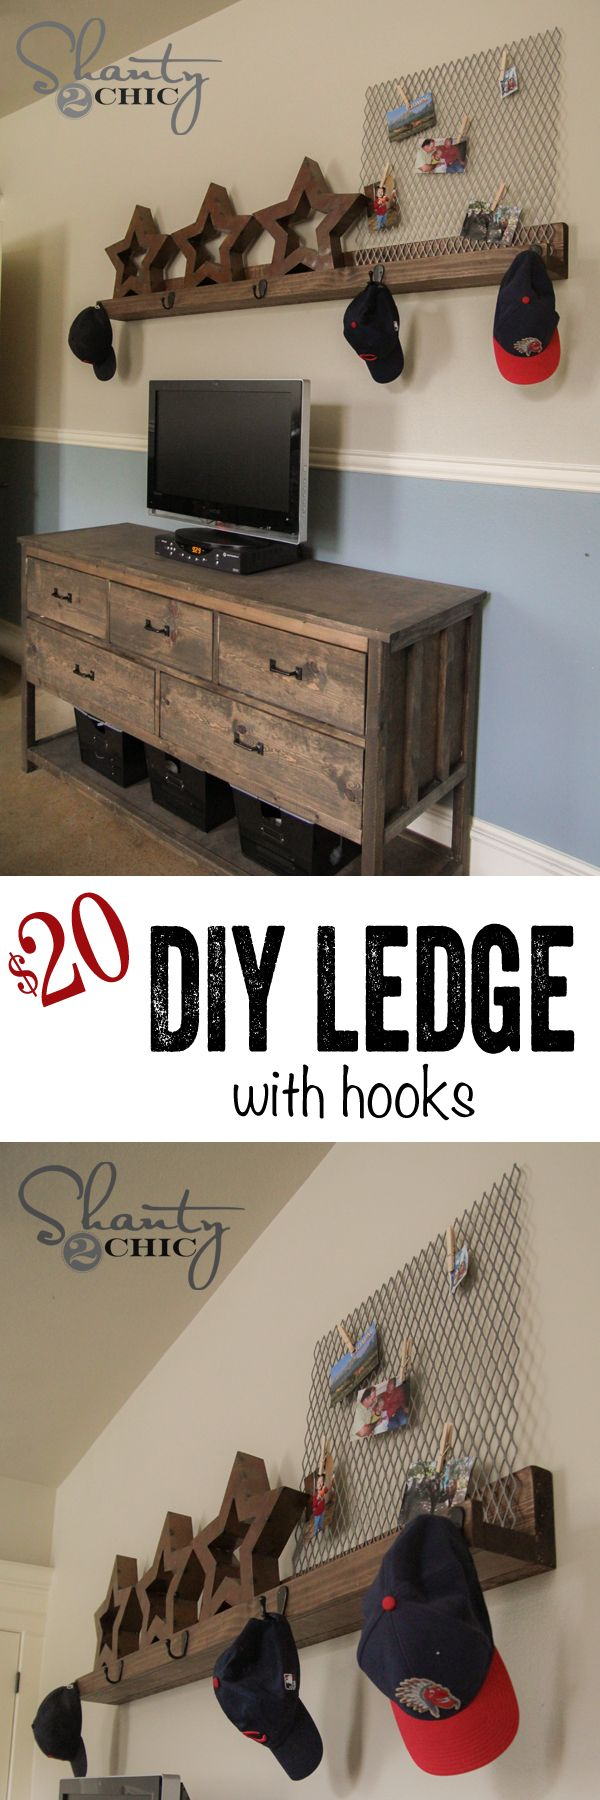 DIY Wall Shelf with Hooks!  Easy and so practical... LOVE it!